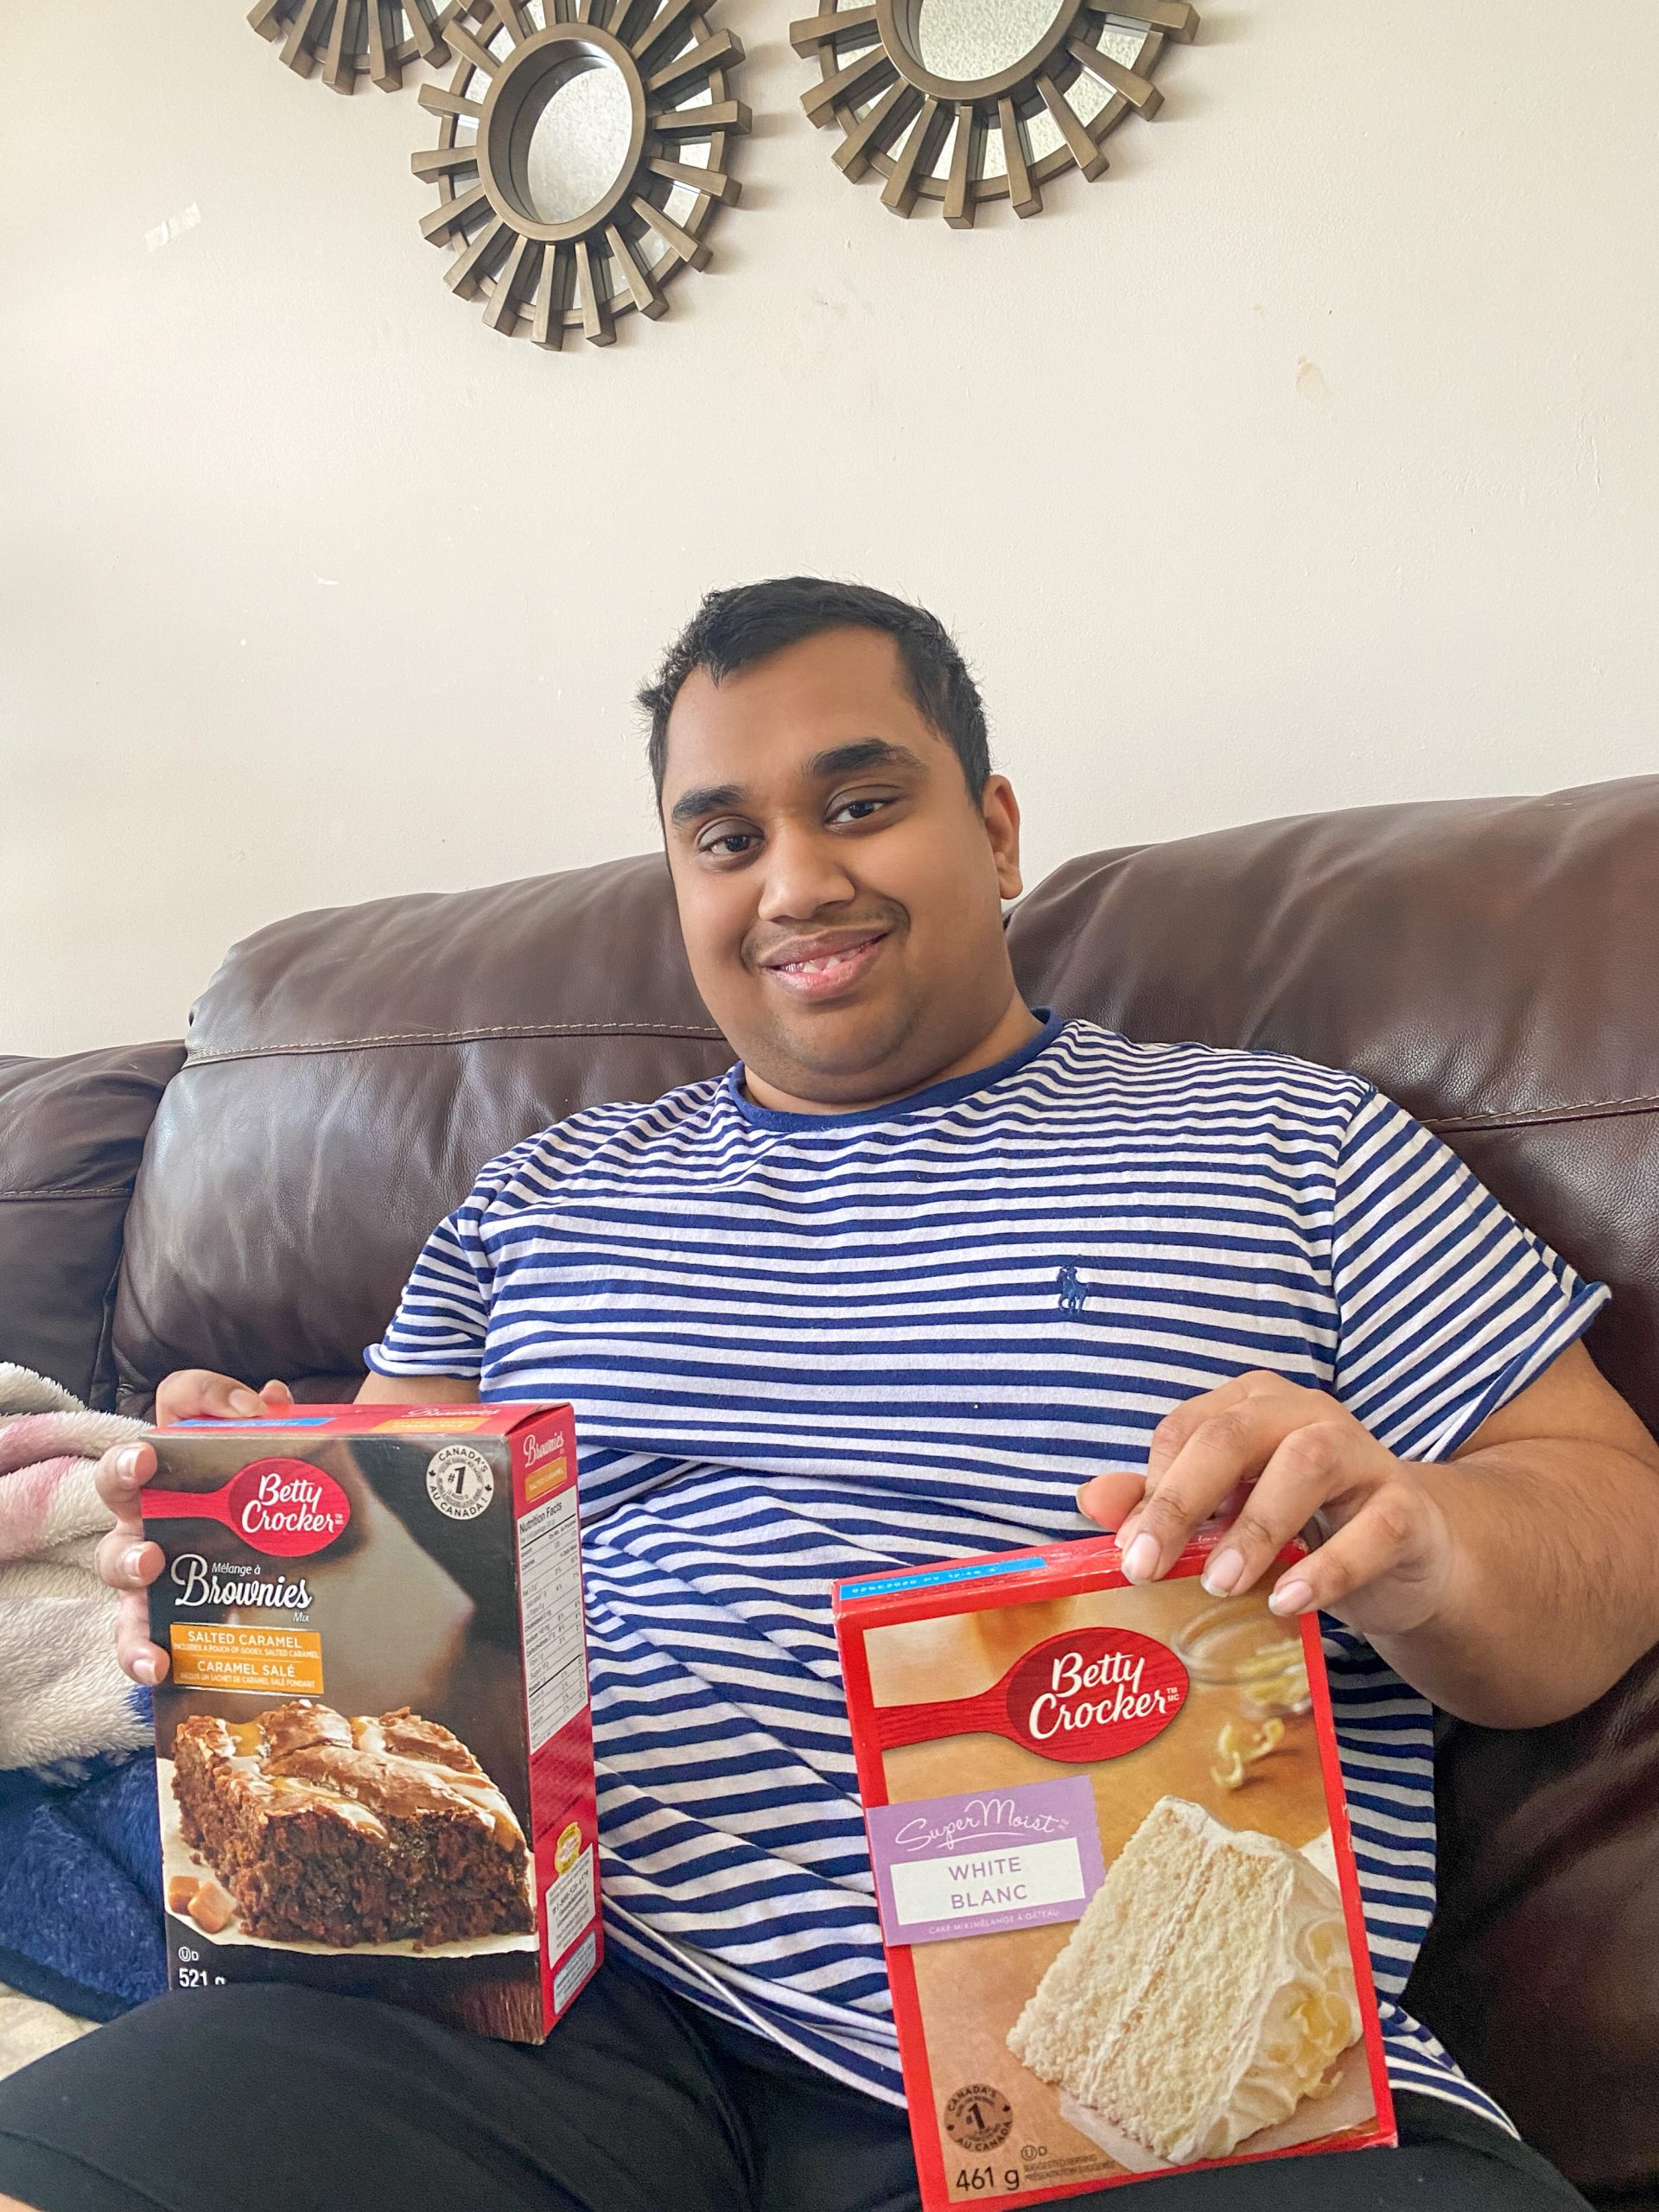 Ridwan sitting on a couch and smiling at the camera. He is holding boxes of Betty Crocker baking mixes. One hand has a brownie mix and the other a cake mix.